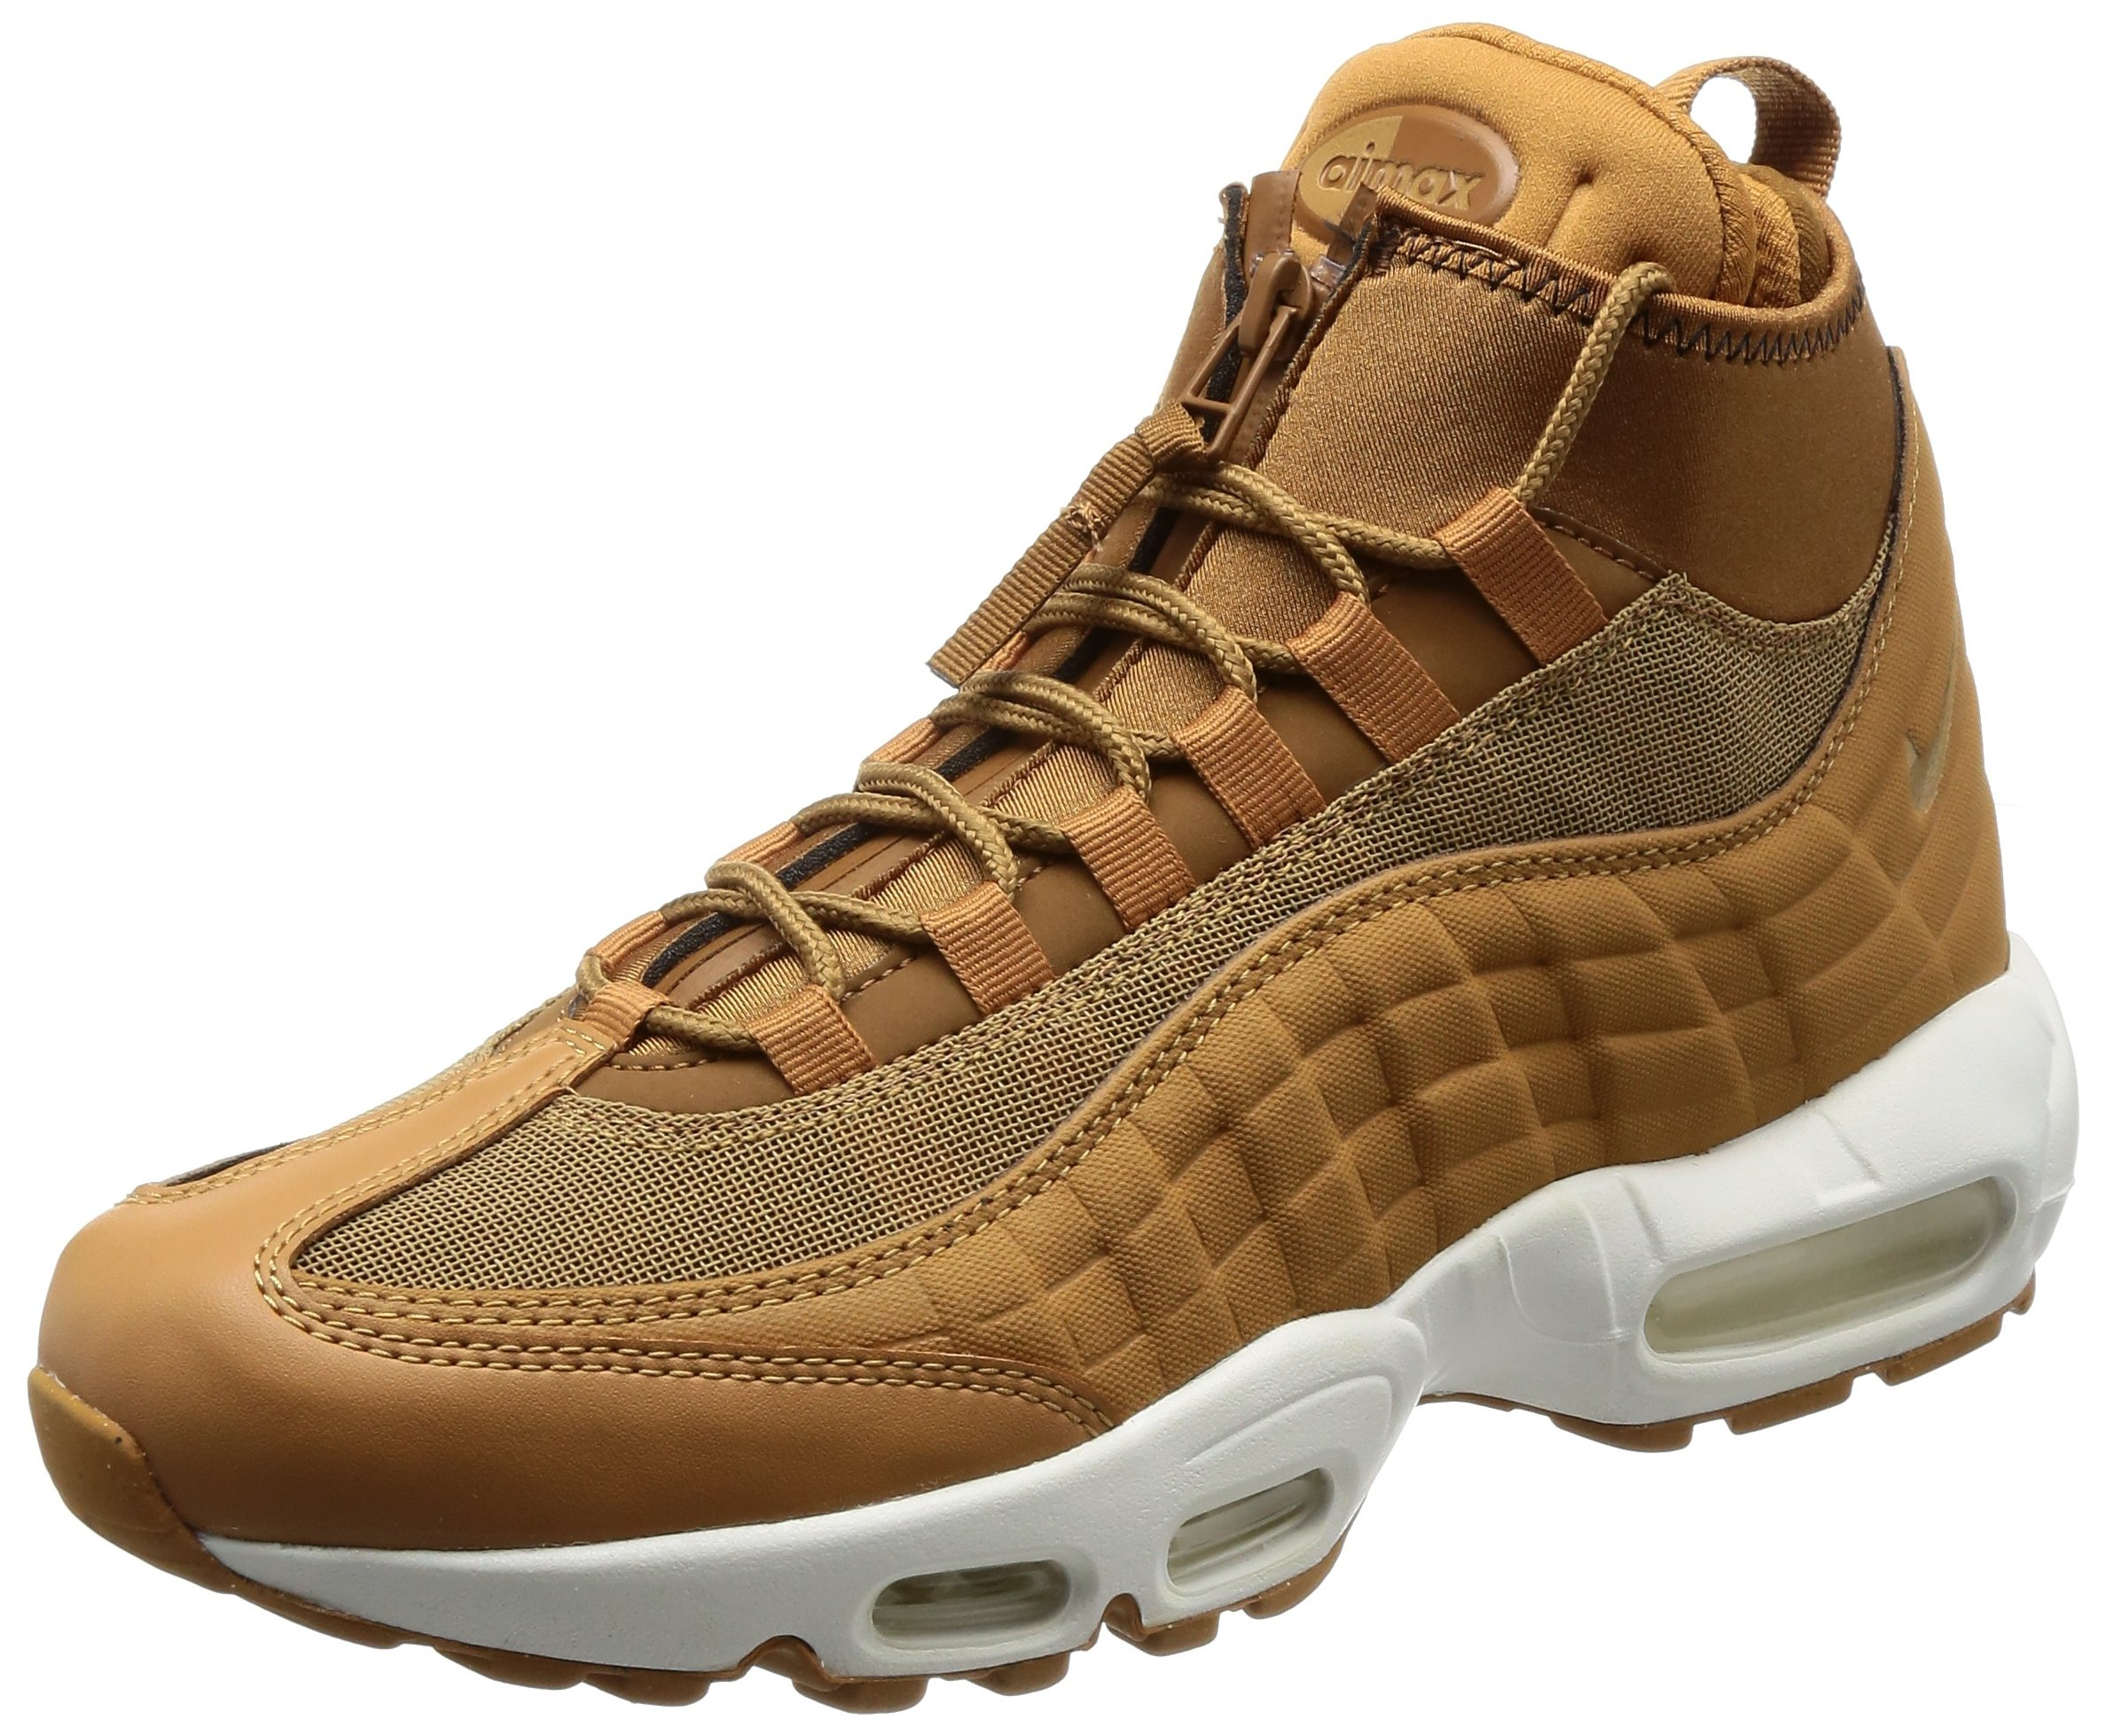 quality design 1715b 5e728 Galleon - Nike Air Max 95 Sneakerboot Men s Boot Flax Flax Ale Brown Sail  806809-201 (9.5 D(M) US)